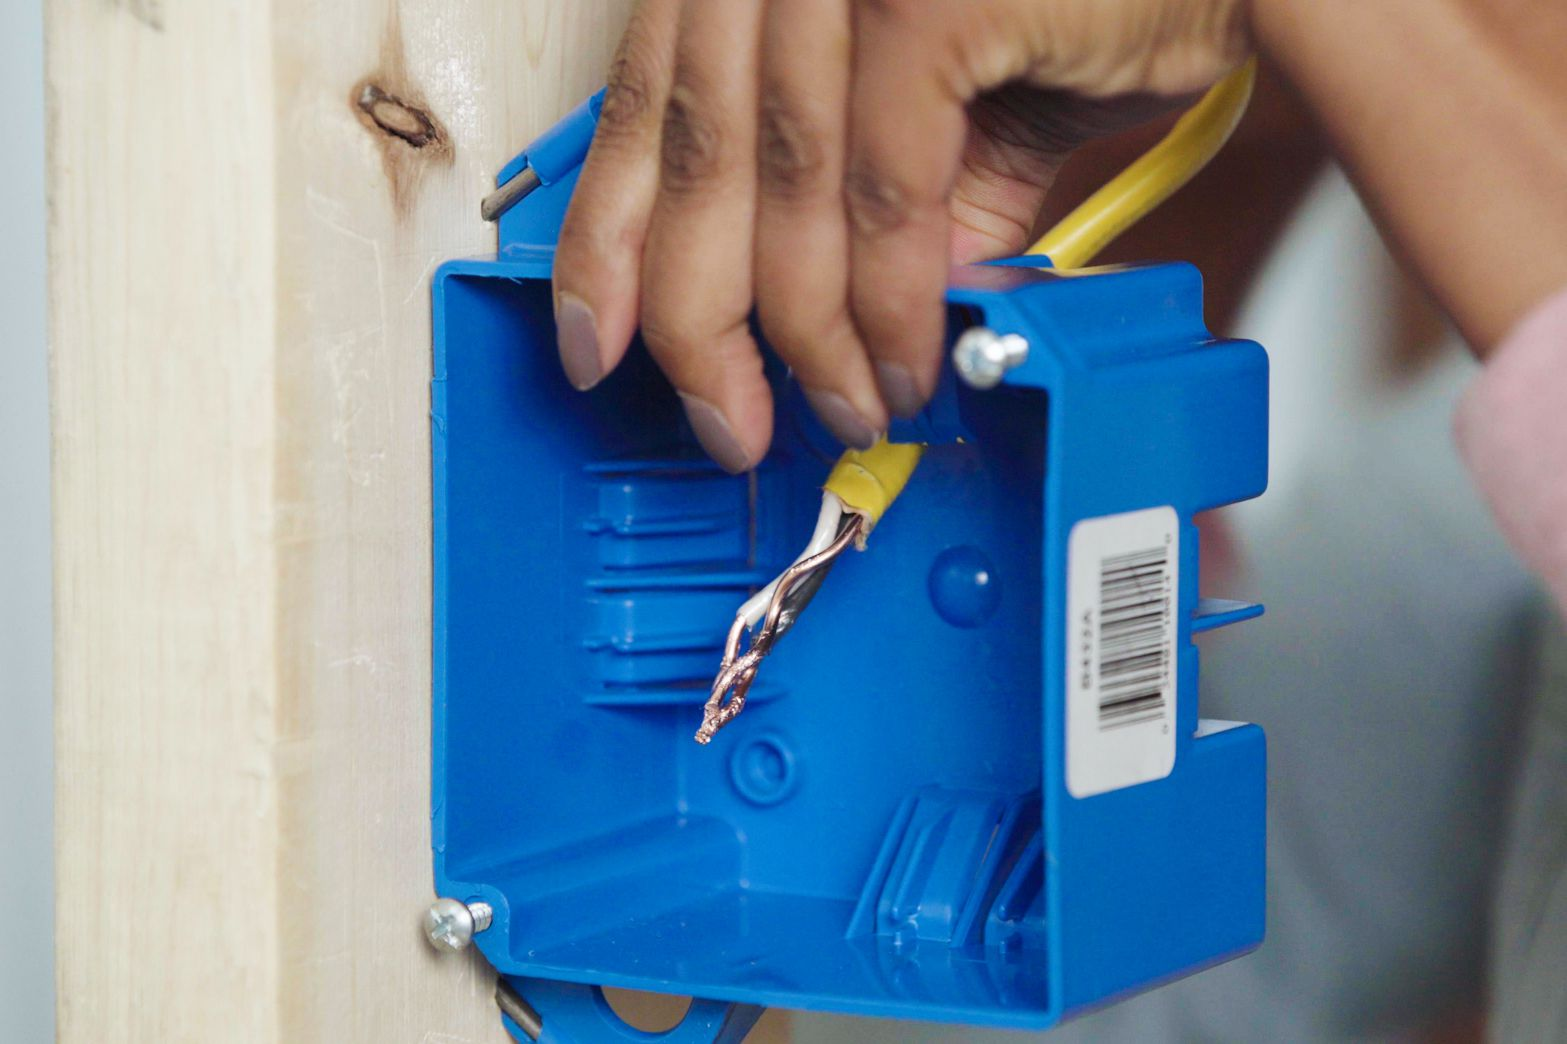 End cables clamped inside blue electrical junction box